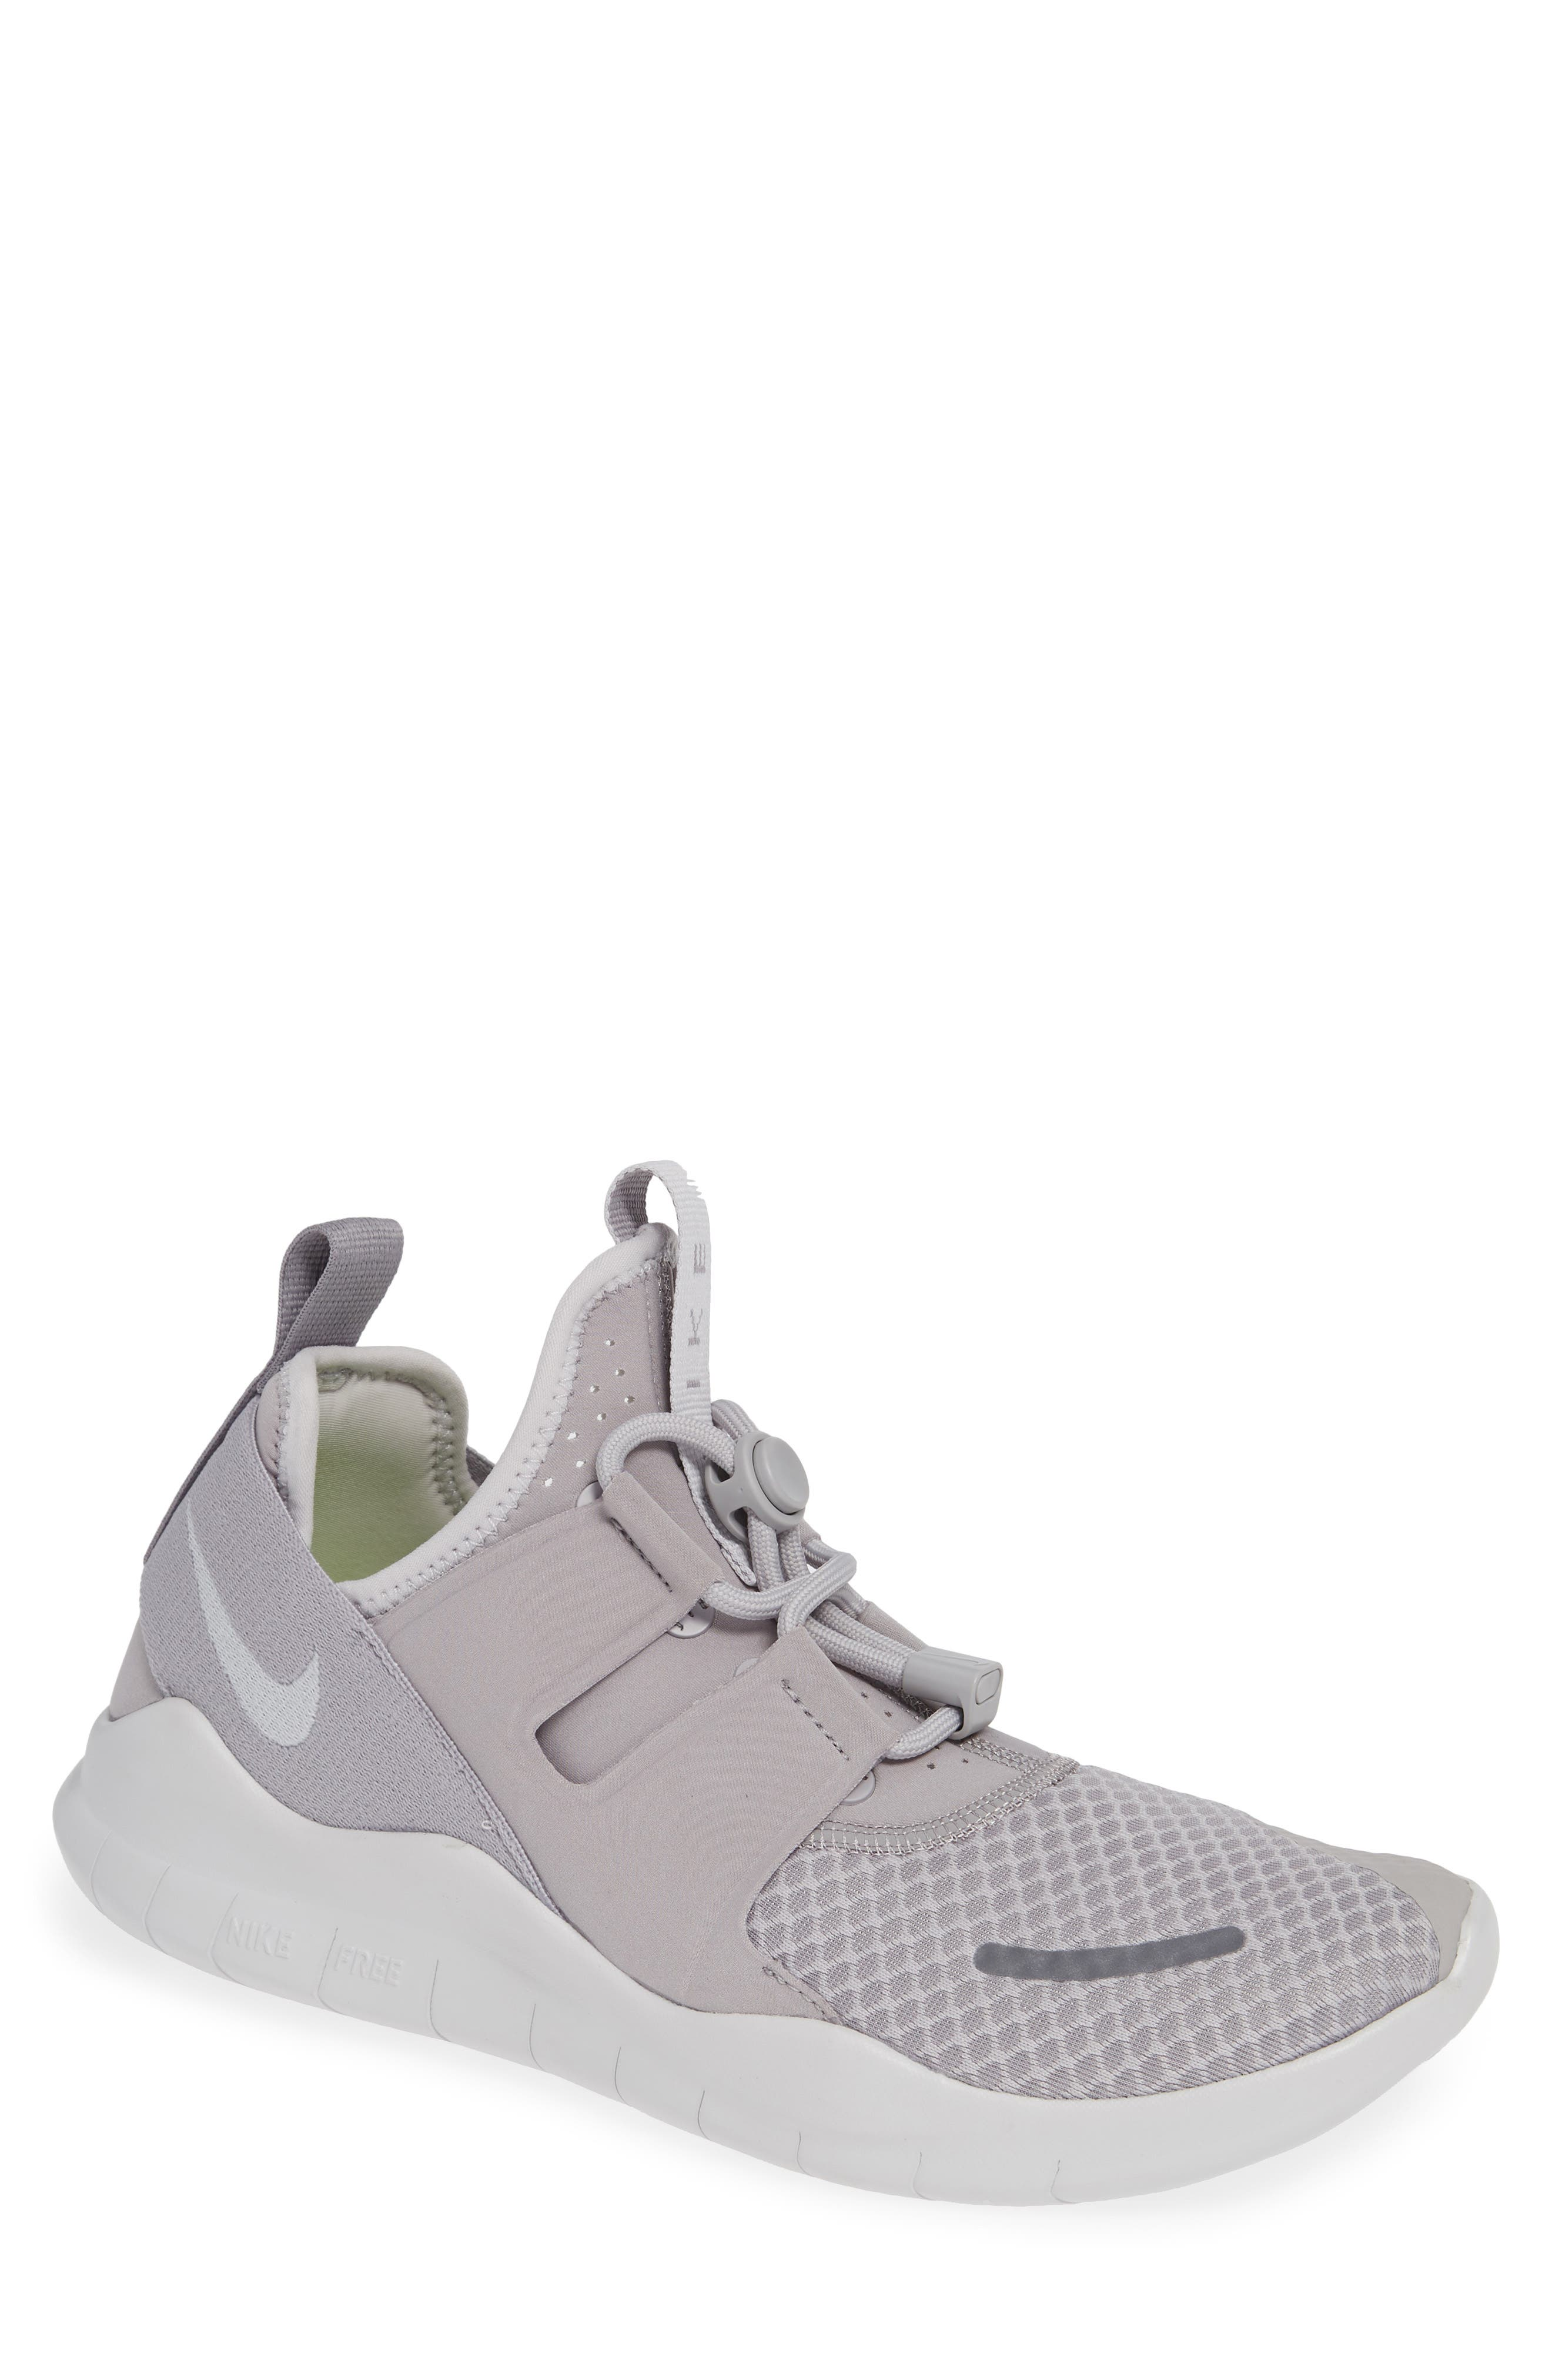 Free RN Commuter 2018 Running Shoe,                             Main thumbnail 1, color,                             ATMOSPHERE GREY/ VAST GREY